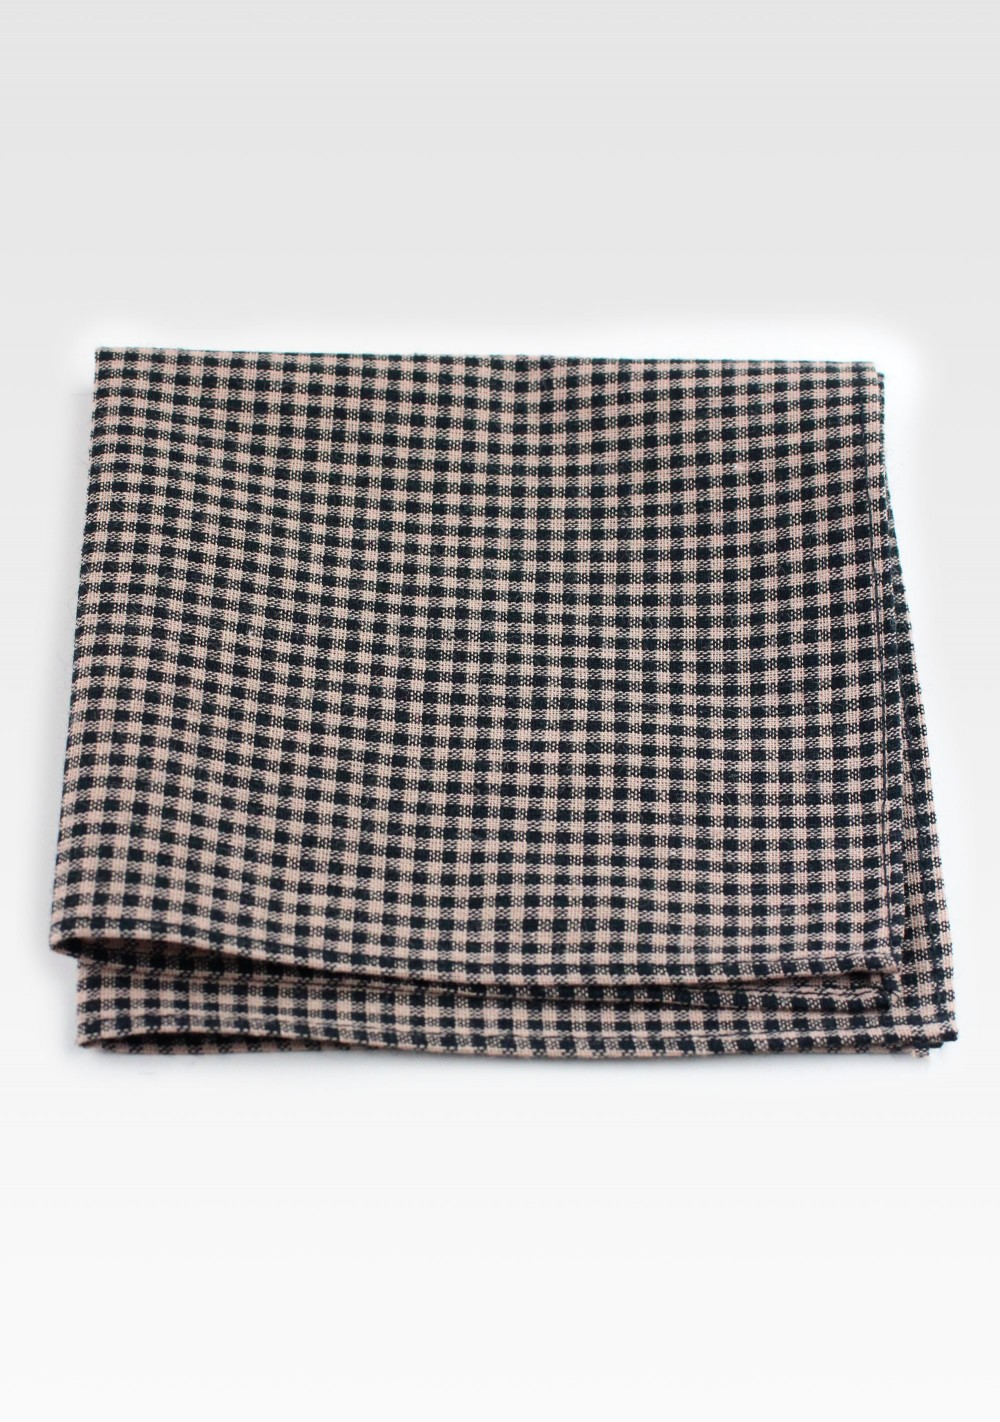 Tweed Cotton Hanky in Brown